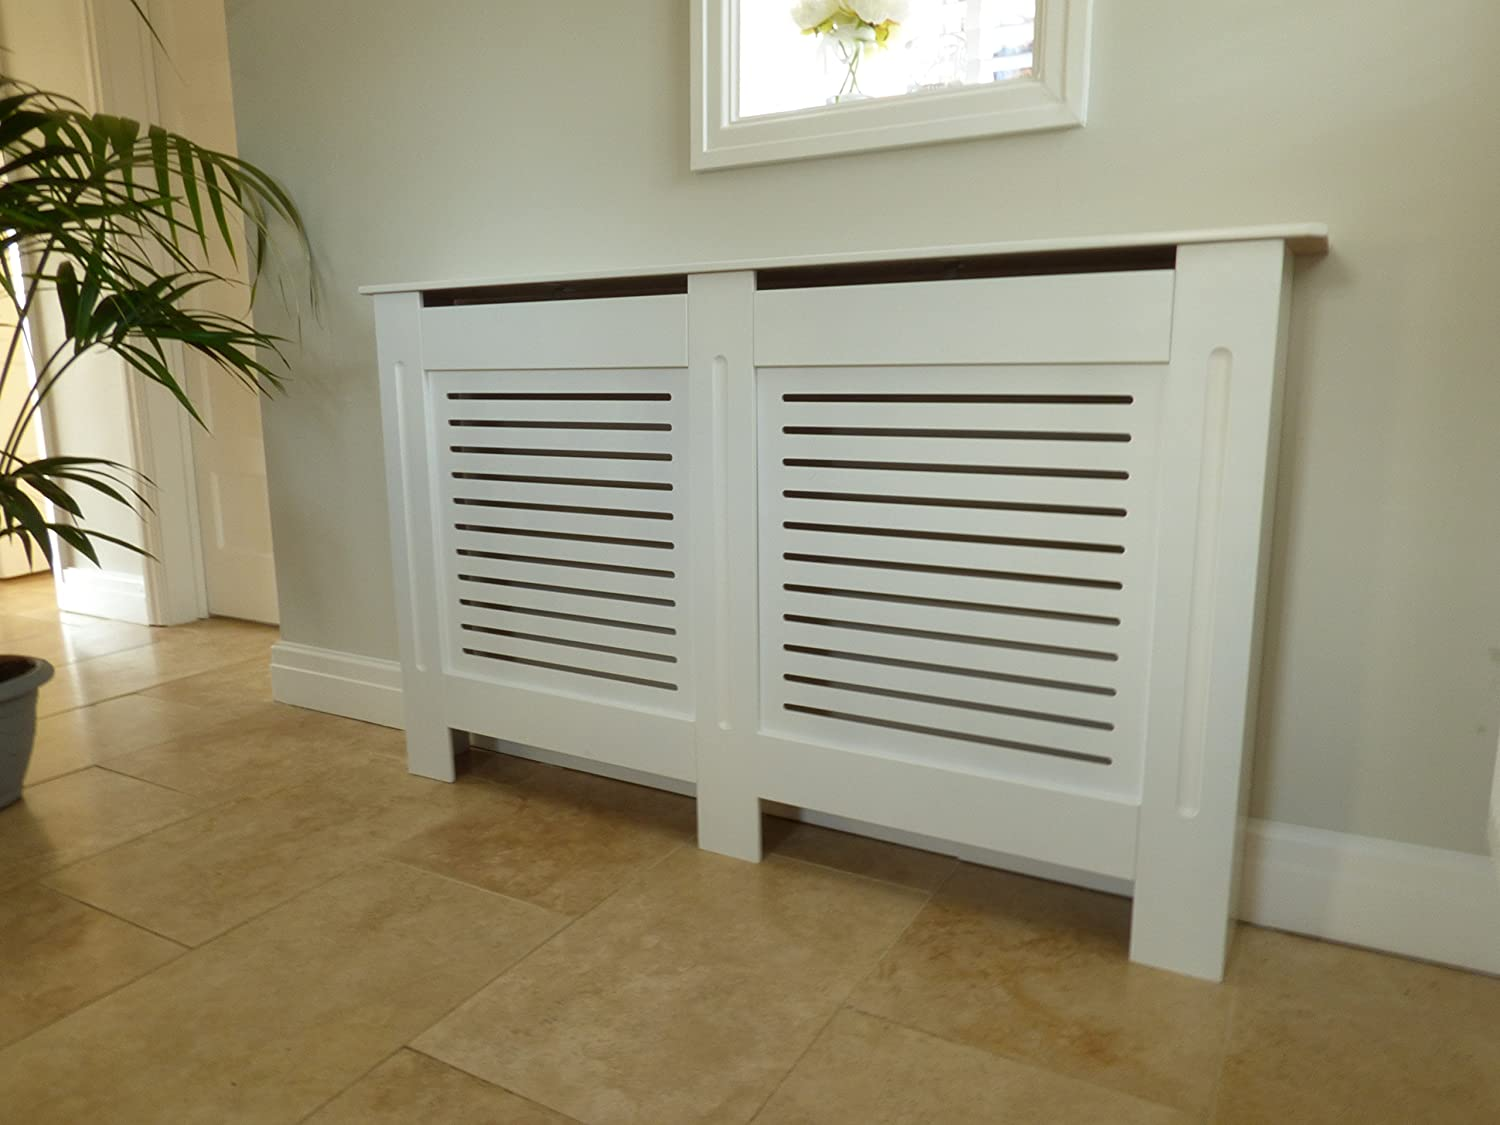 Painted Radiator Cover Radiator Cabinet Modern Style White MDF ...